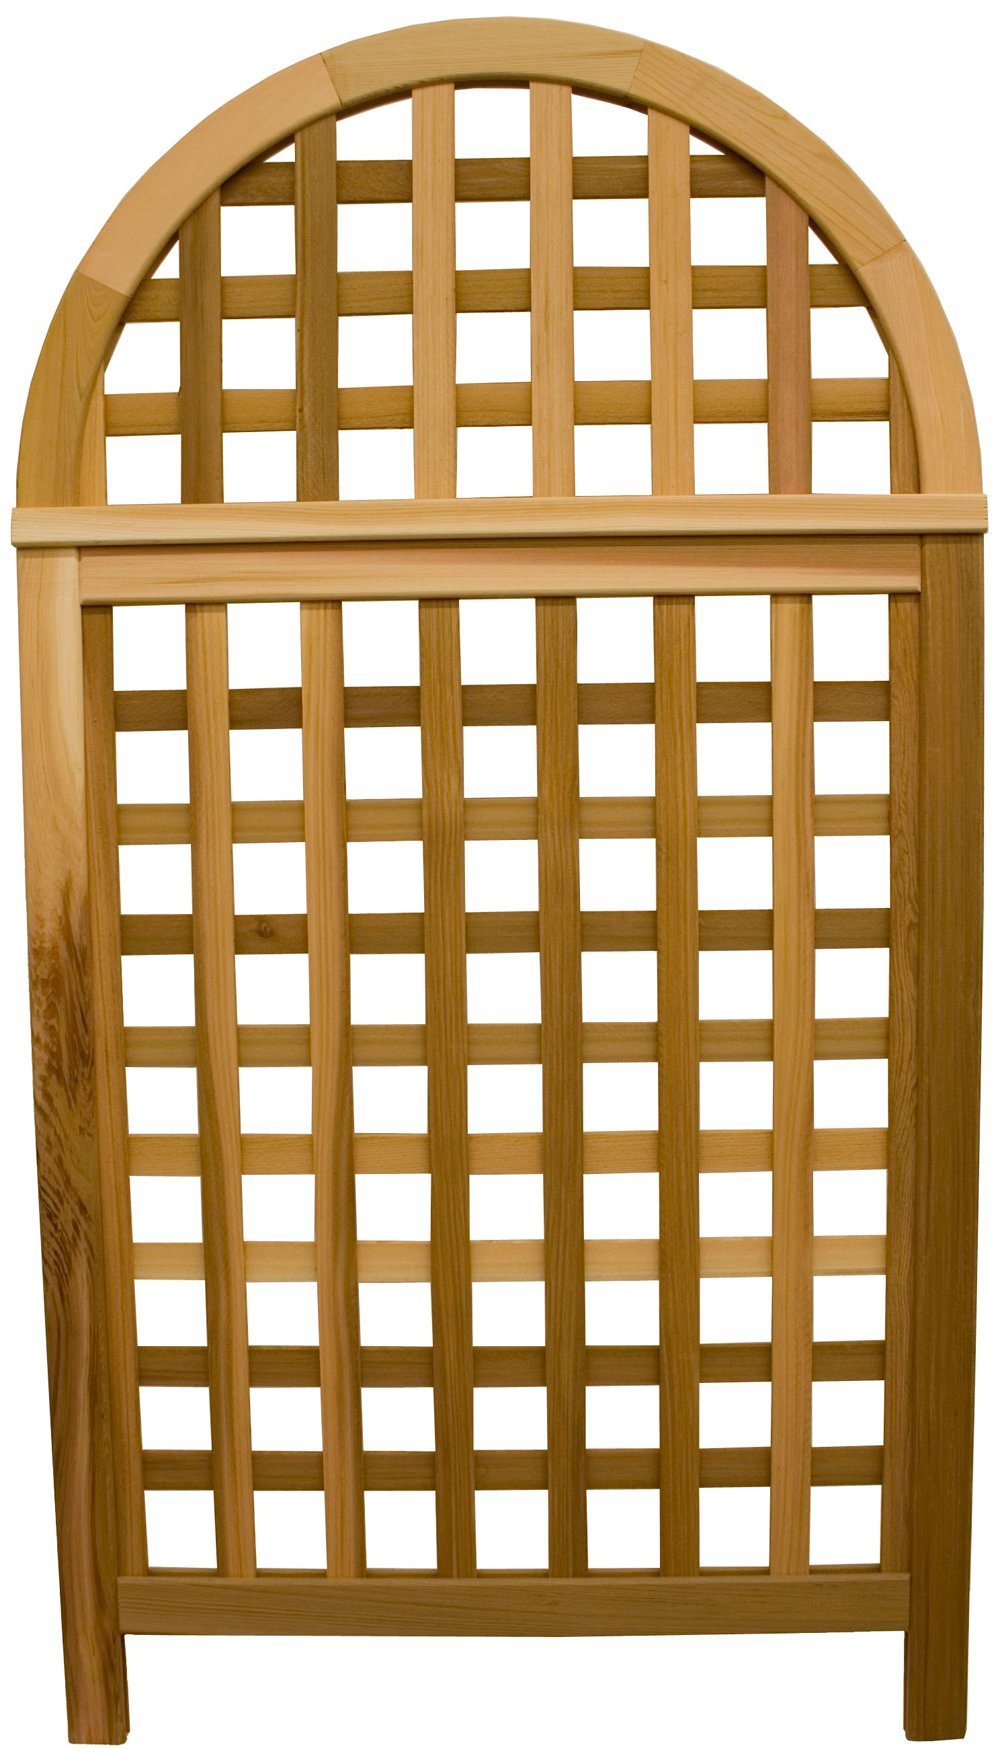 Arboria Andover Arch Privacy Screen Cedar Wood Over 5.5 Ft High With Lattice Design